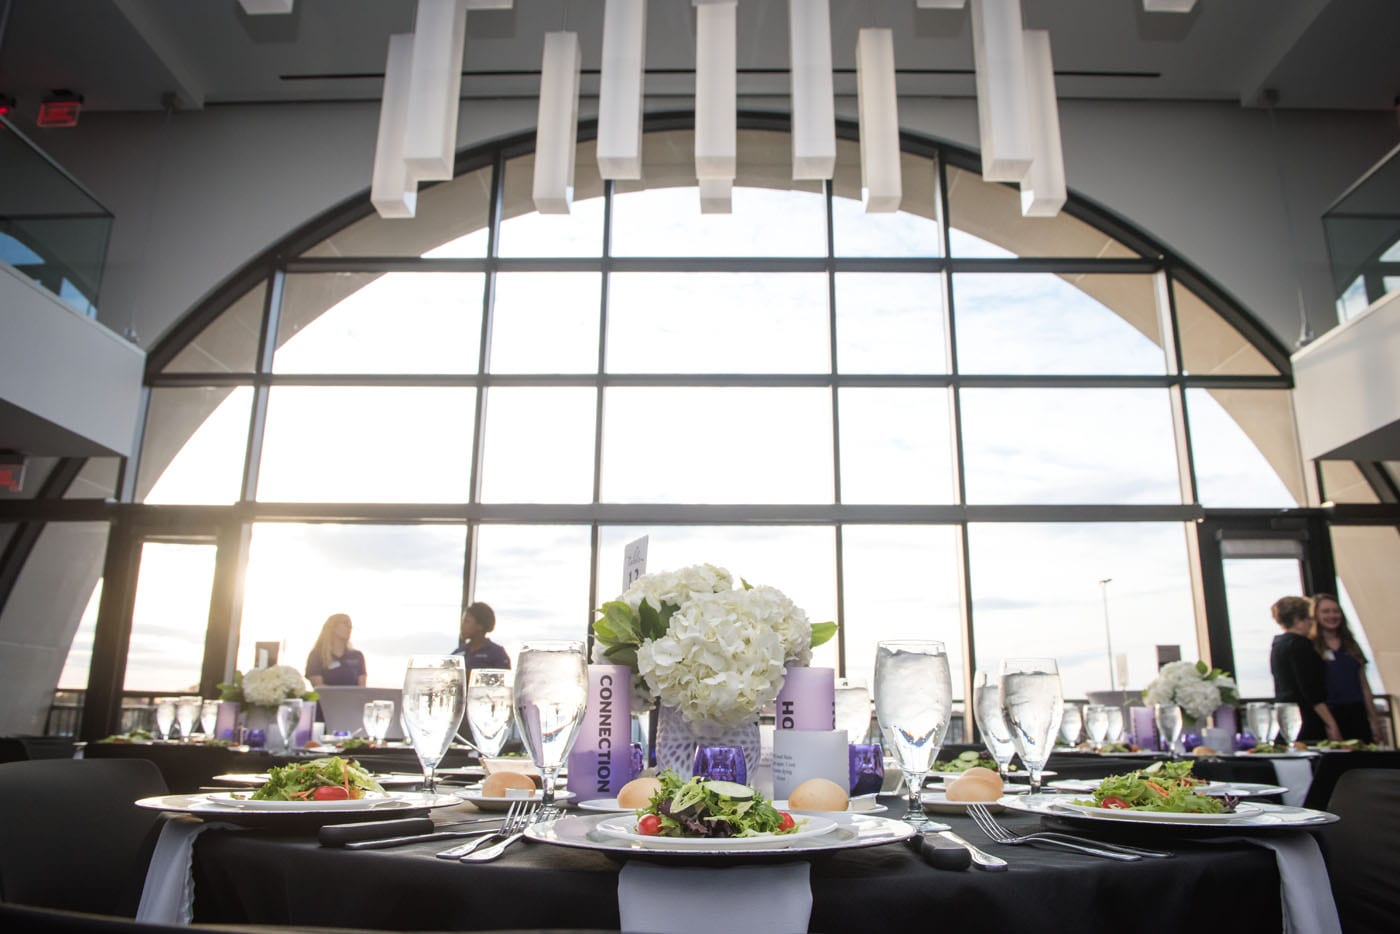 A round table covered in a black tablecloth, formal white place settings and a centerpiece of purple candles and white hydrangeas is framed by an enormous semi-circle window in the background that covers an entire wall.